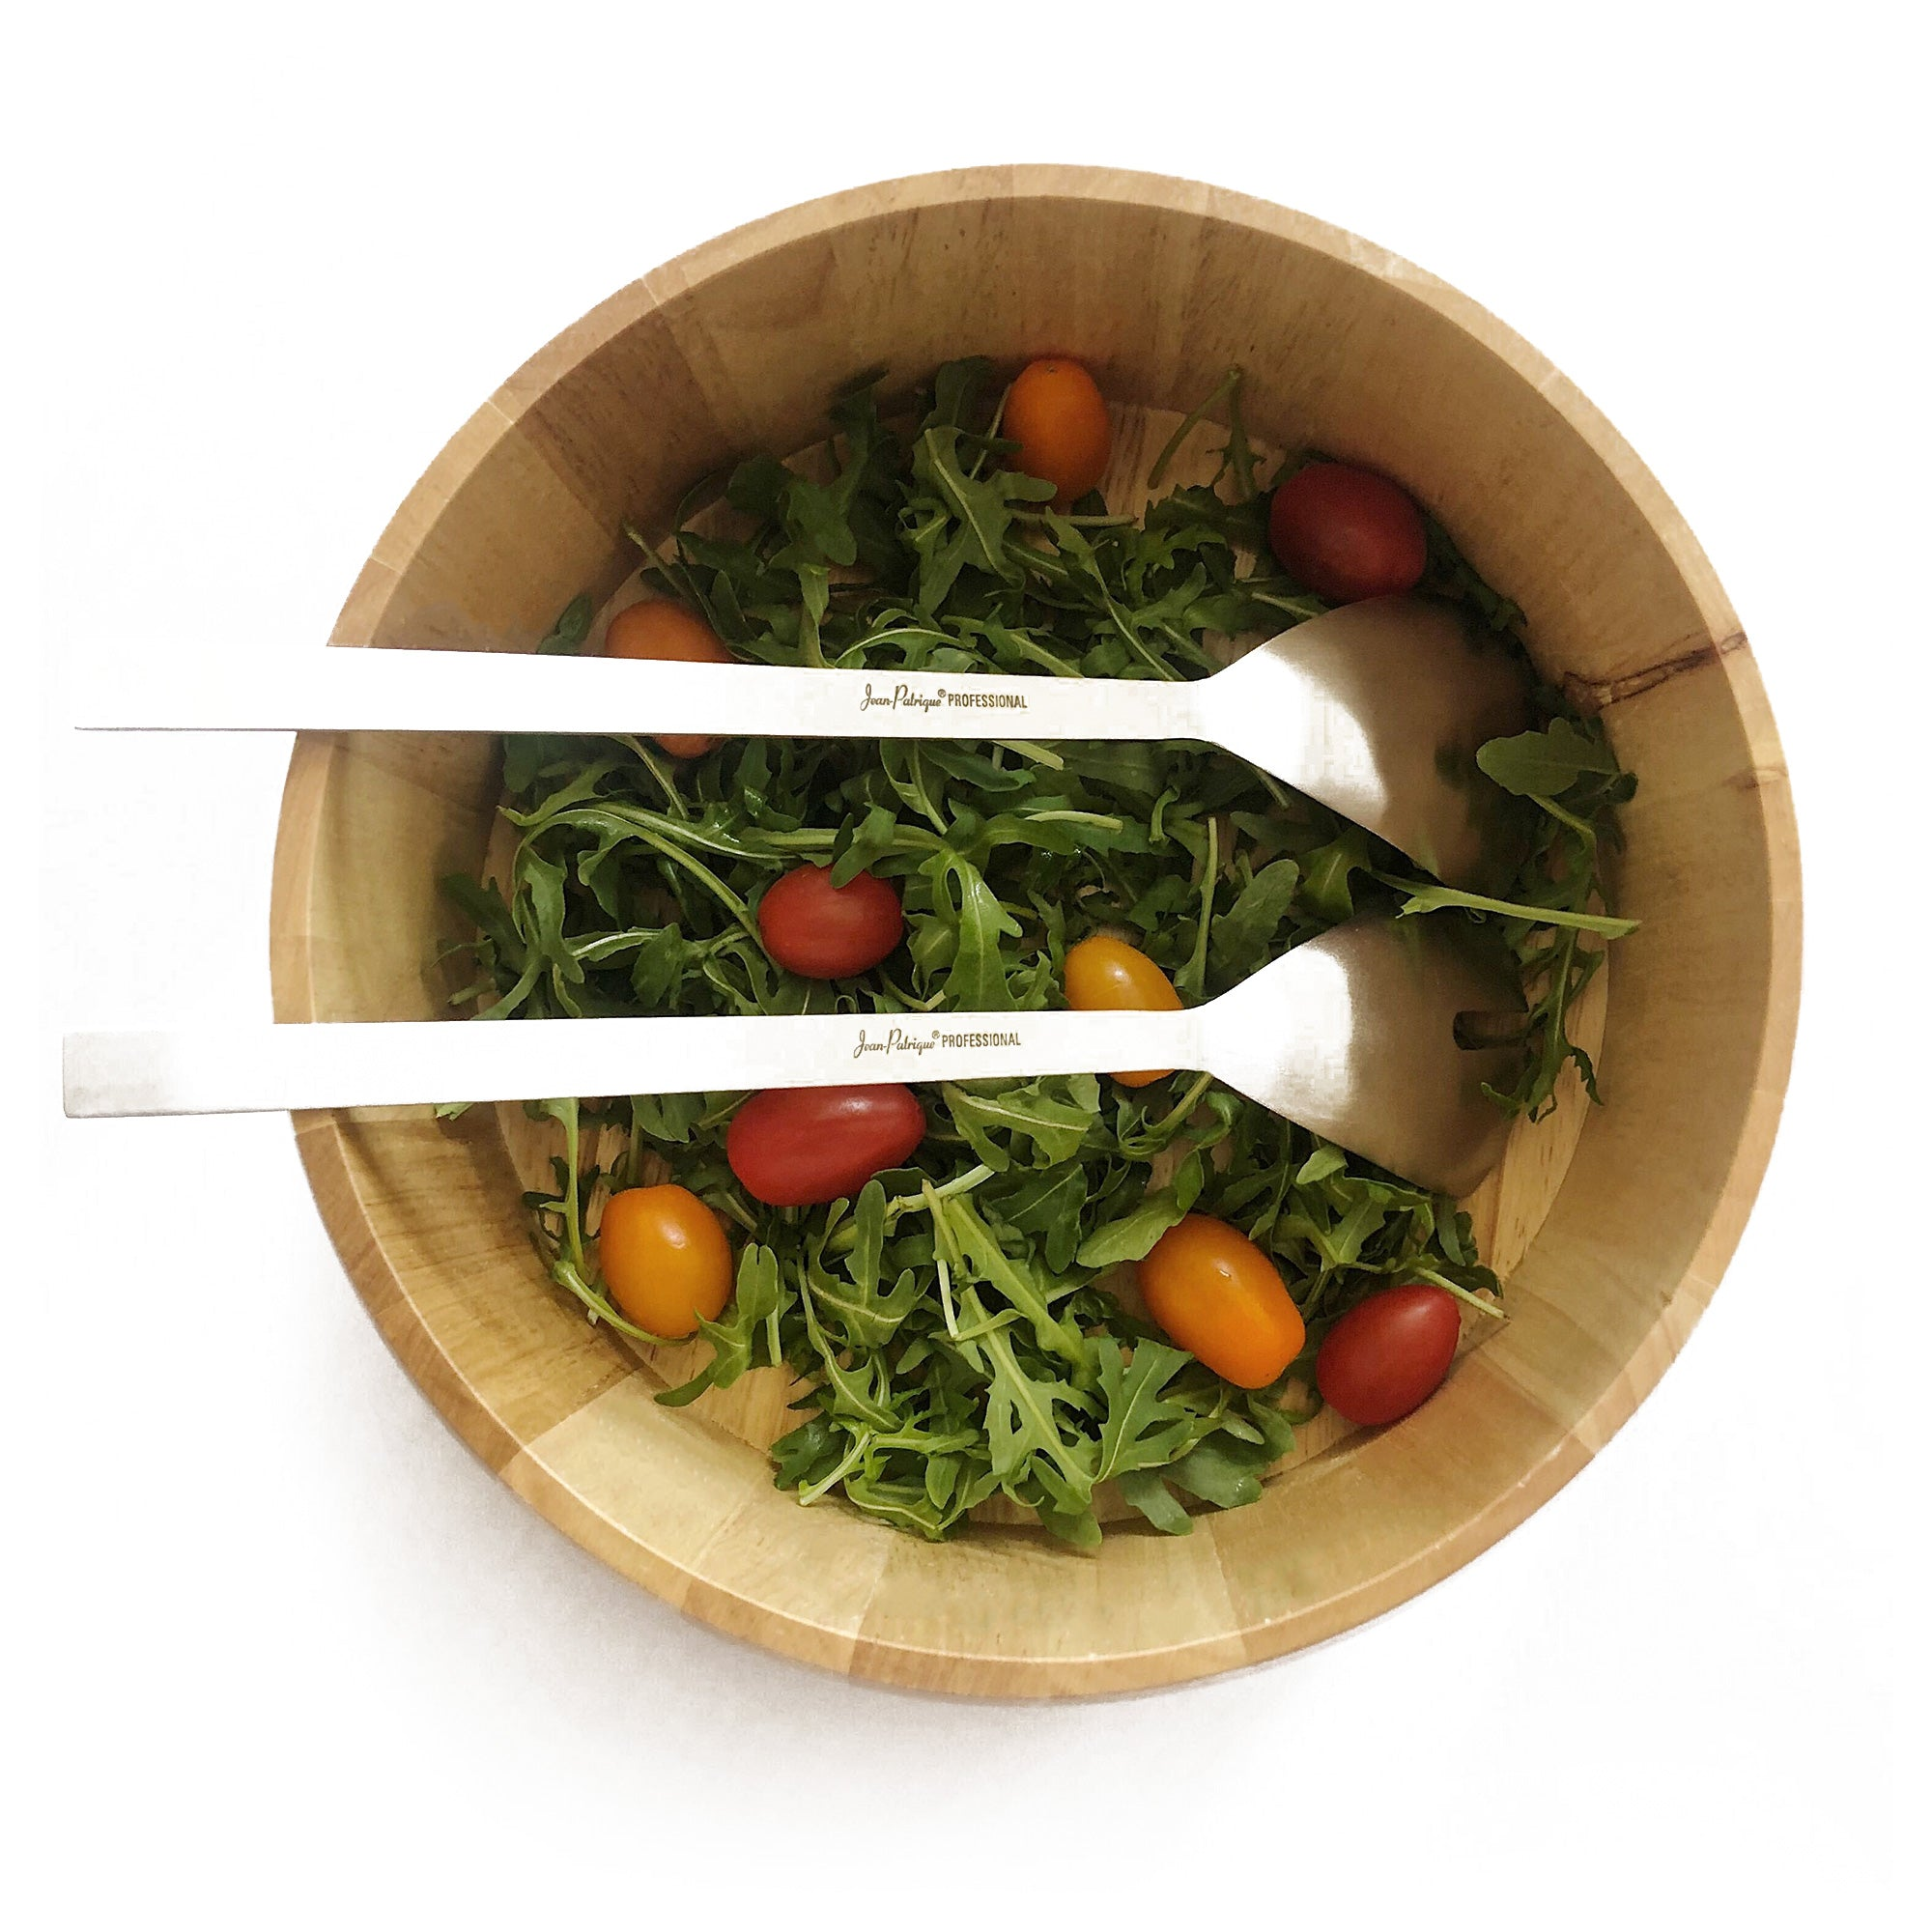 Salad Bowl & Stainless Steel Salad Servers